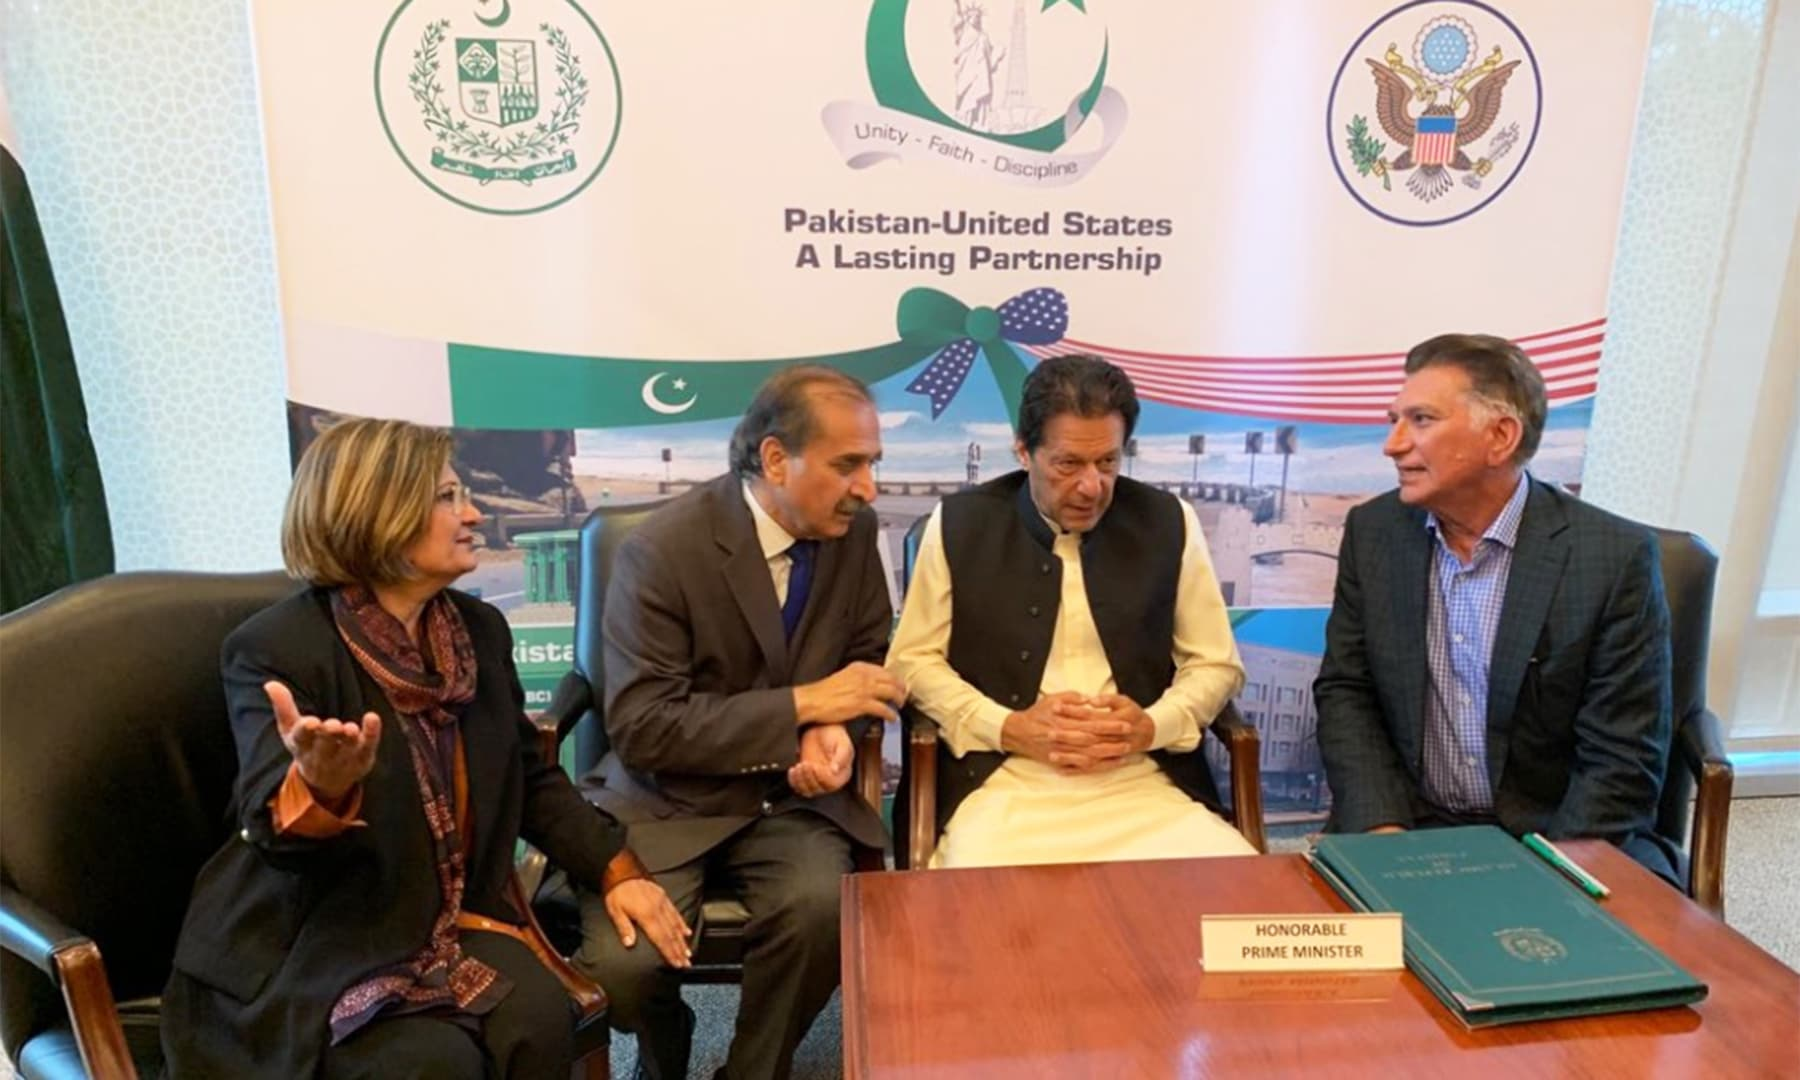 Javaid Anwar, a leading Pakistani American businessman, along with a group of prospective investors called on Prime Minister Imran Khan at Embassy of Pakistan in Washington DC. — PTI Official